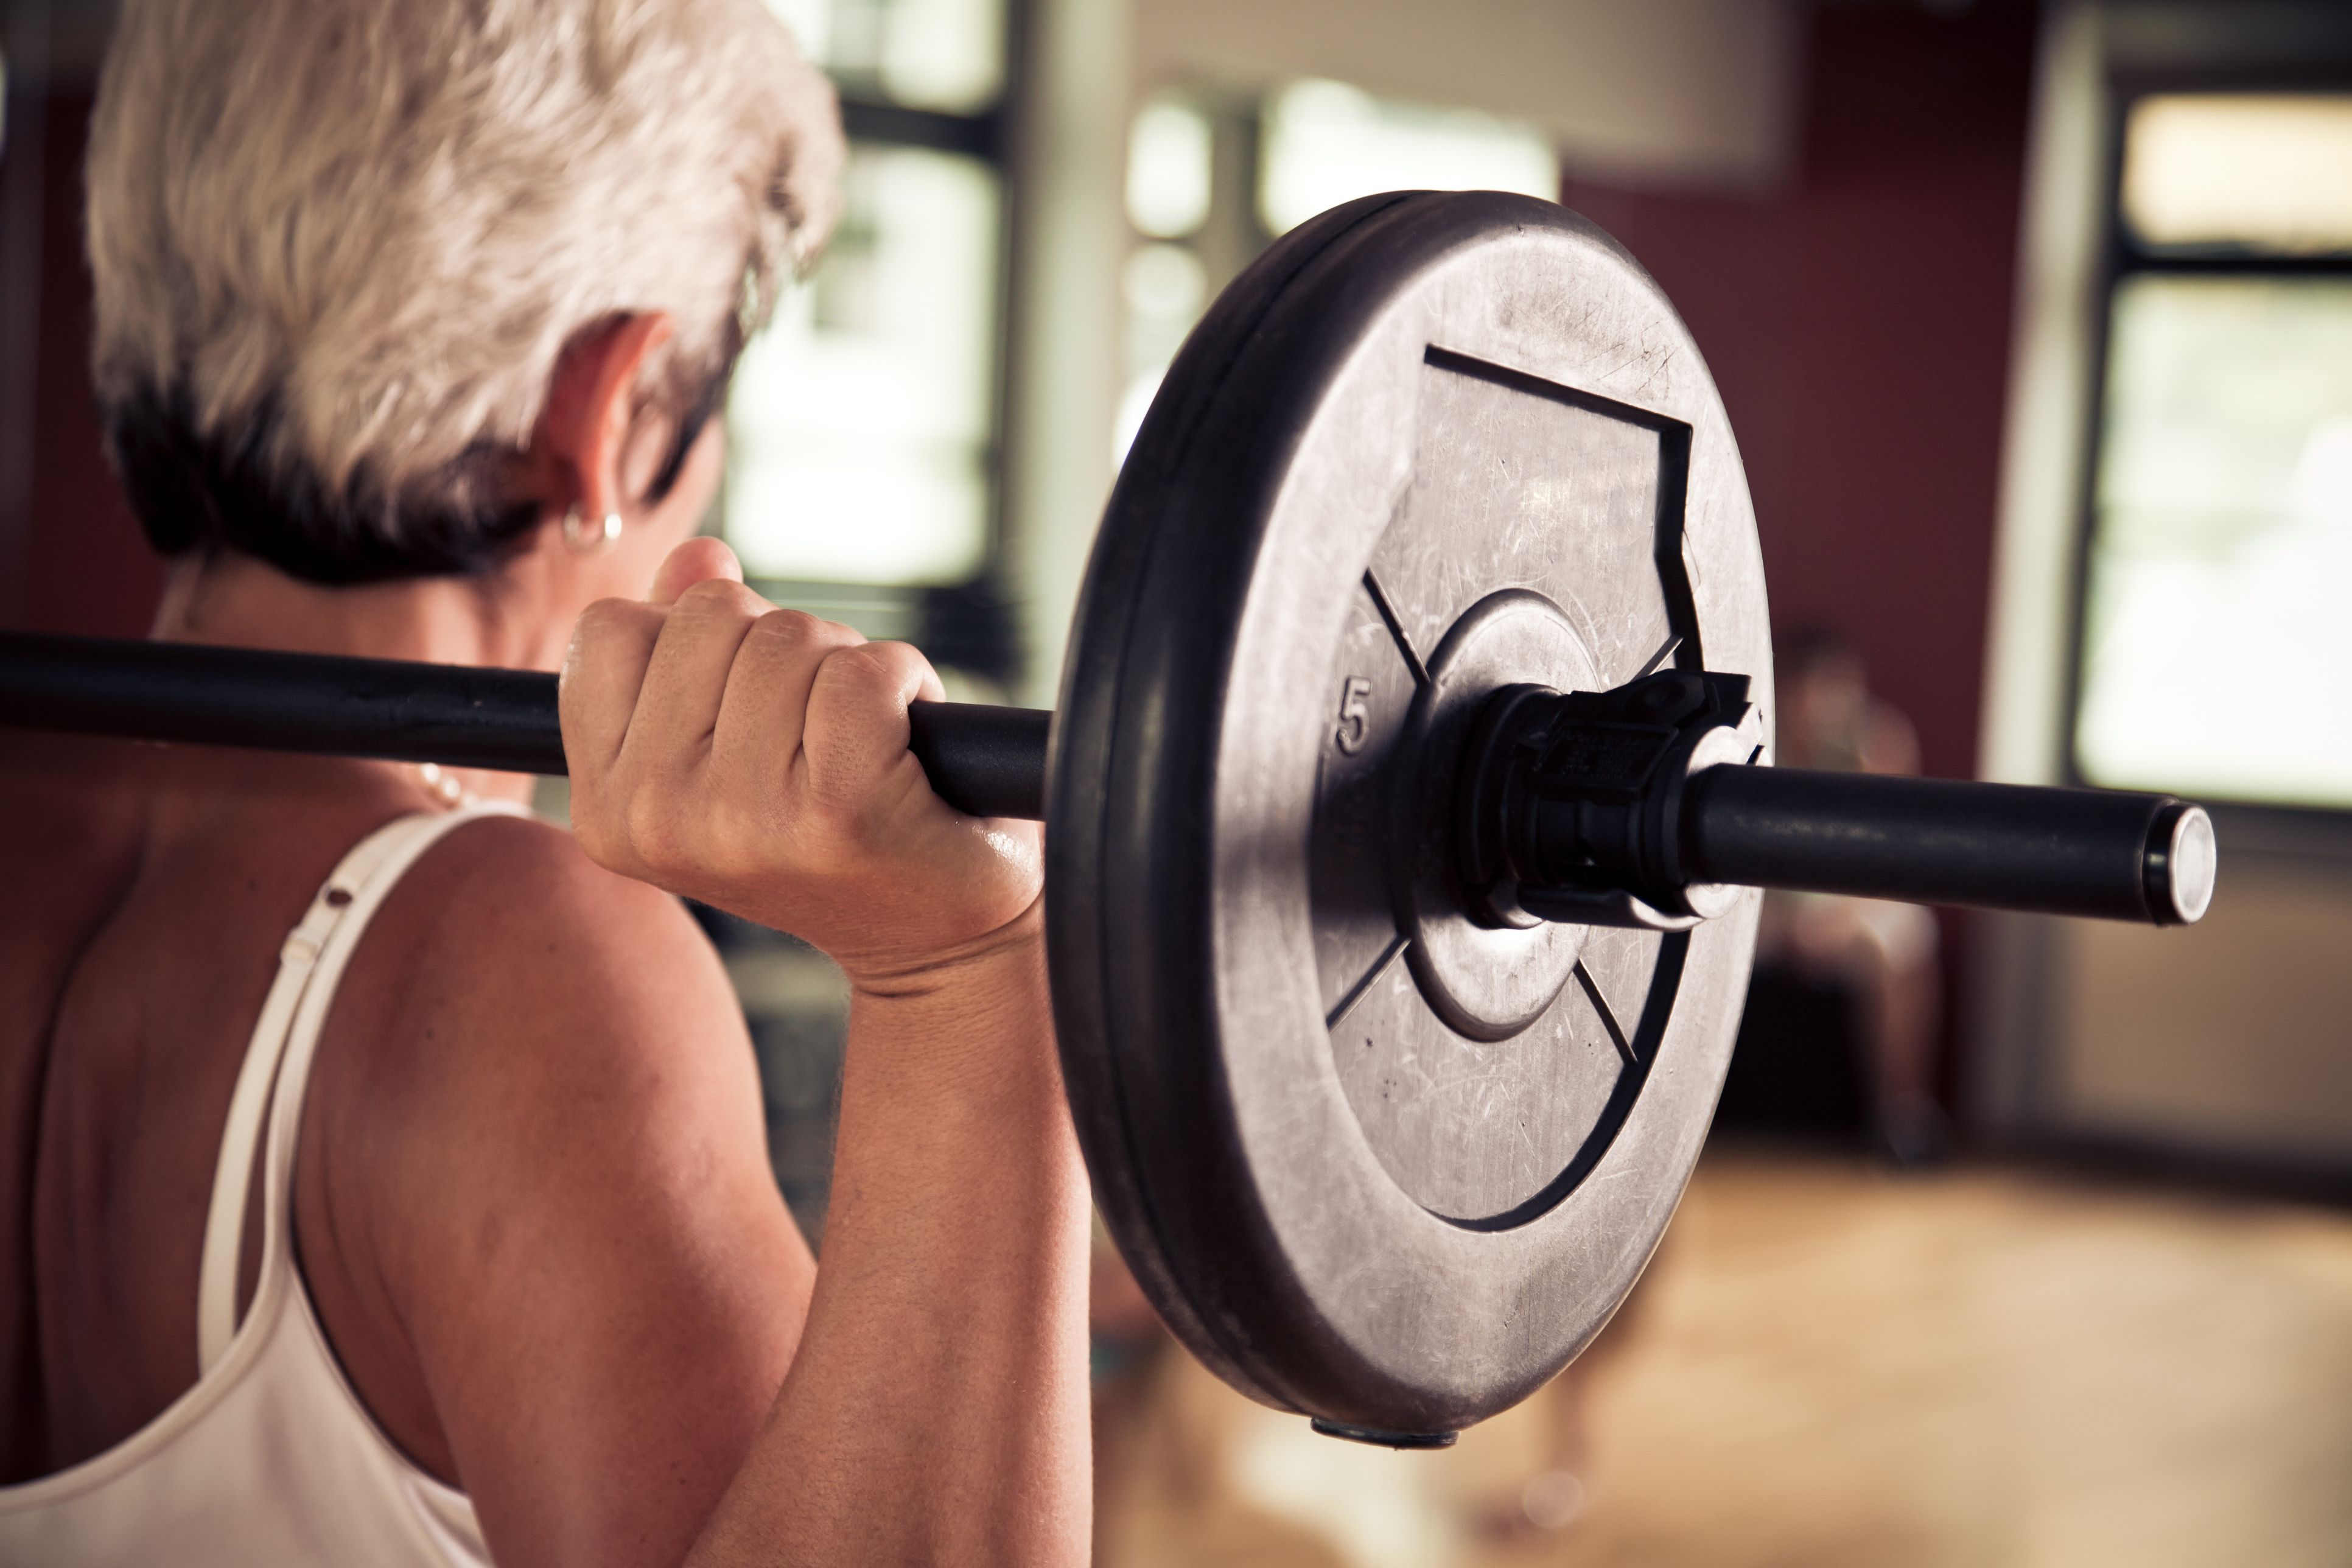 Best way to lose weight quickly at the gym